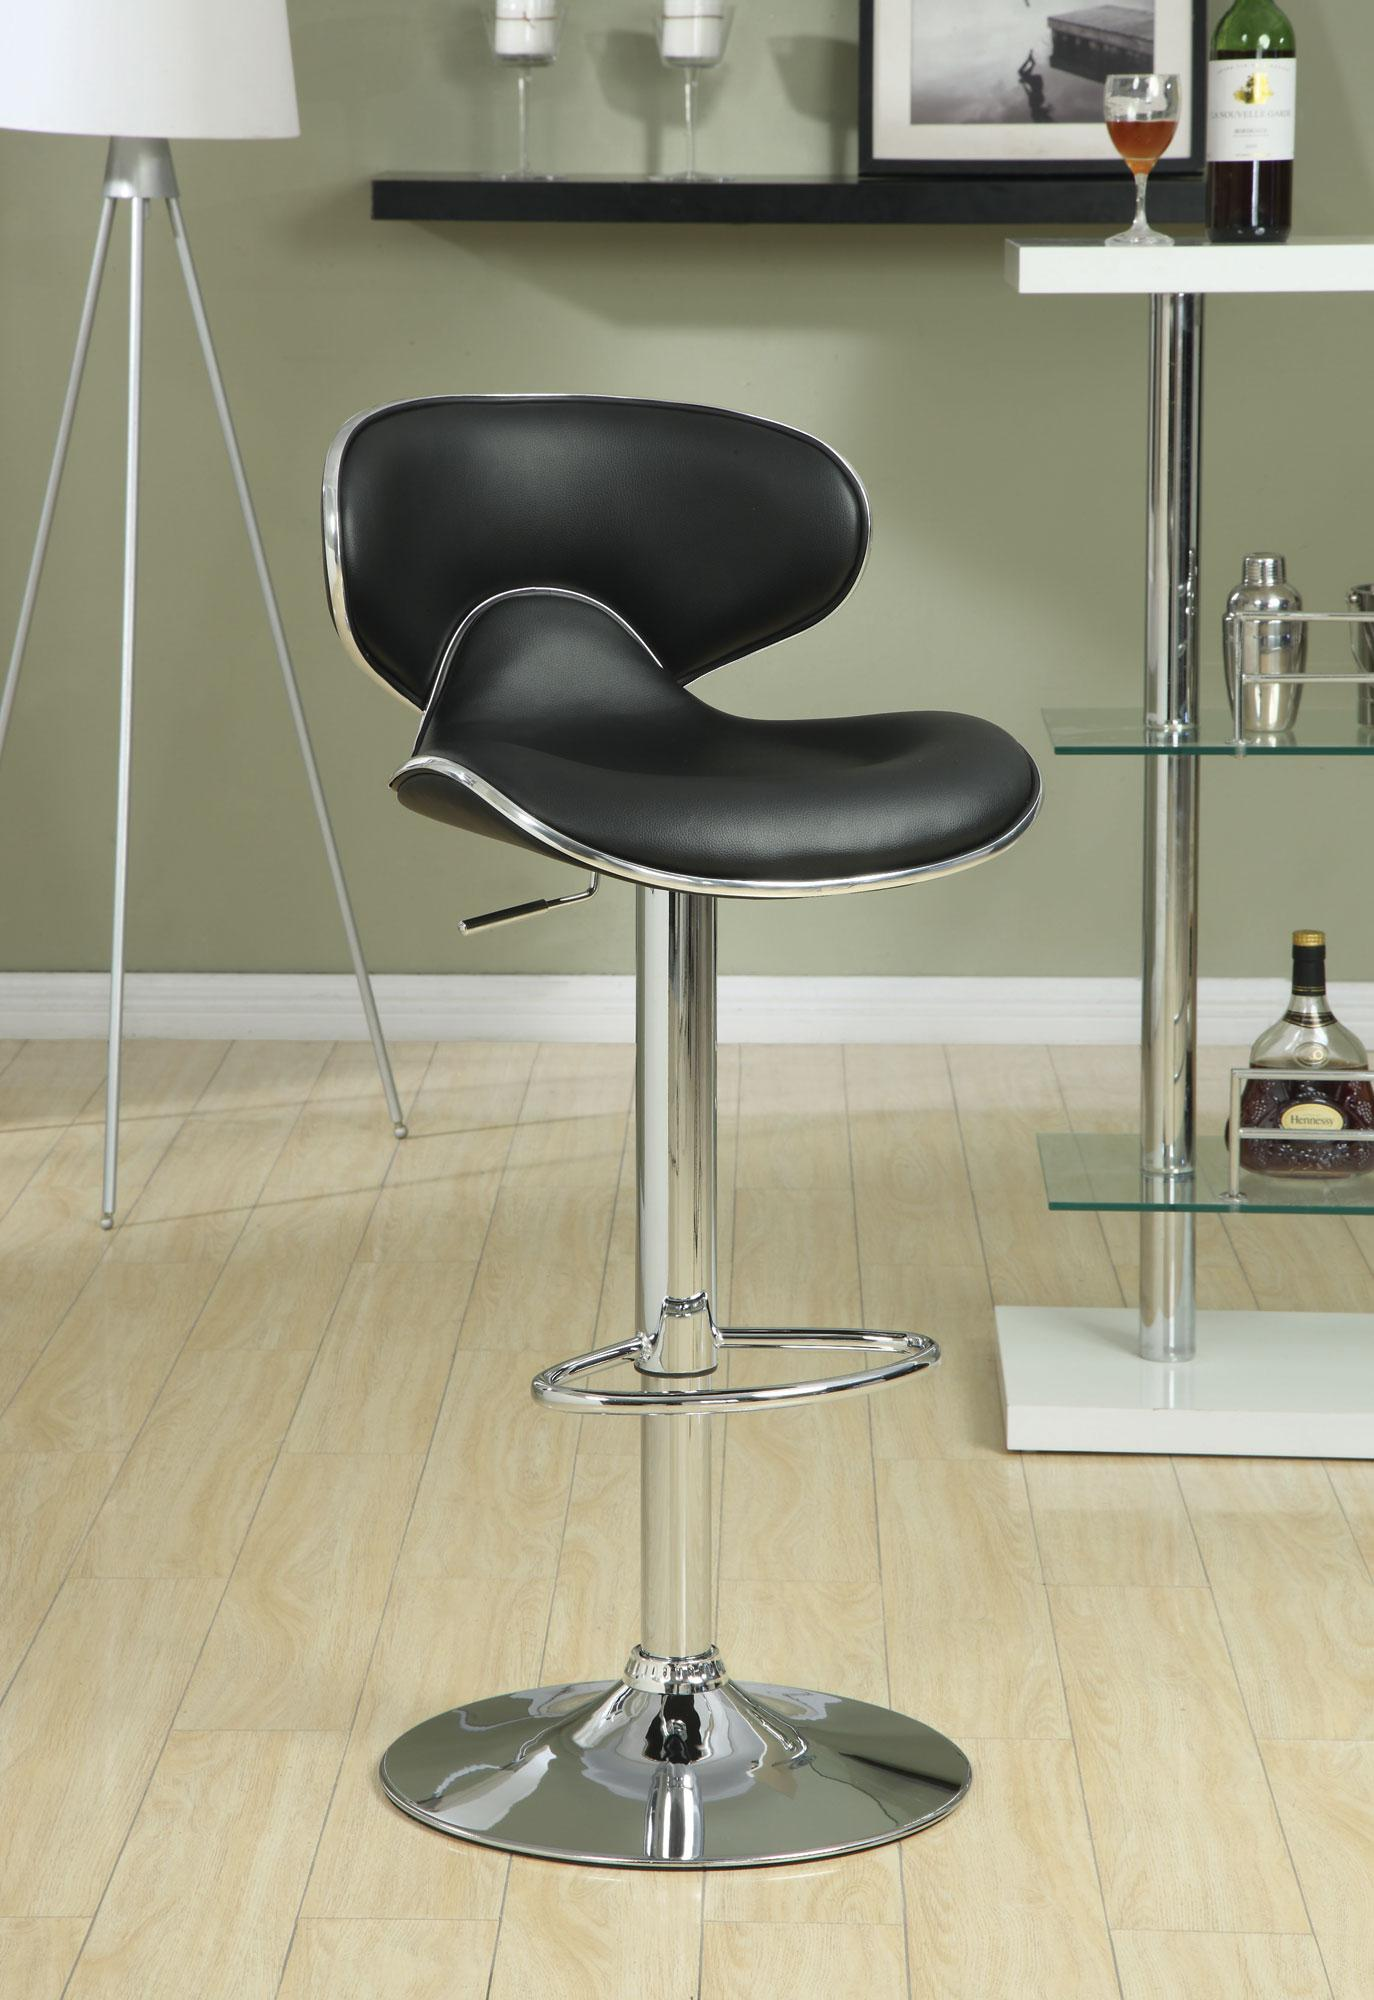 Coaster Dining Chairs and Bar Stools Bar Stool - Item Number: 120359